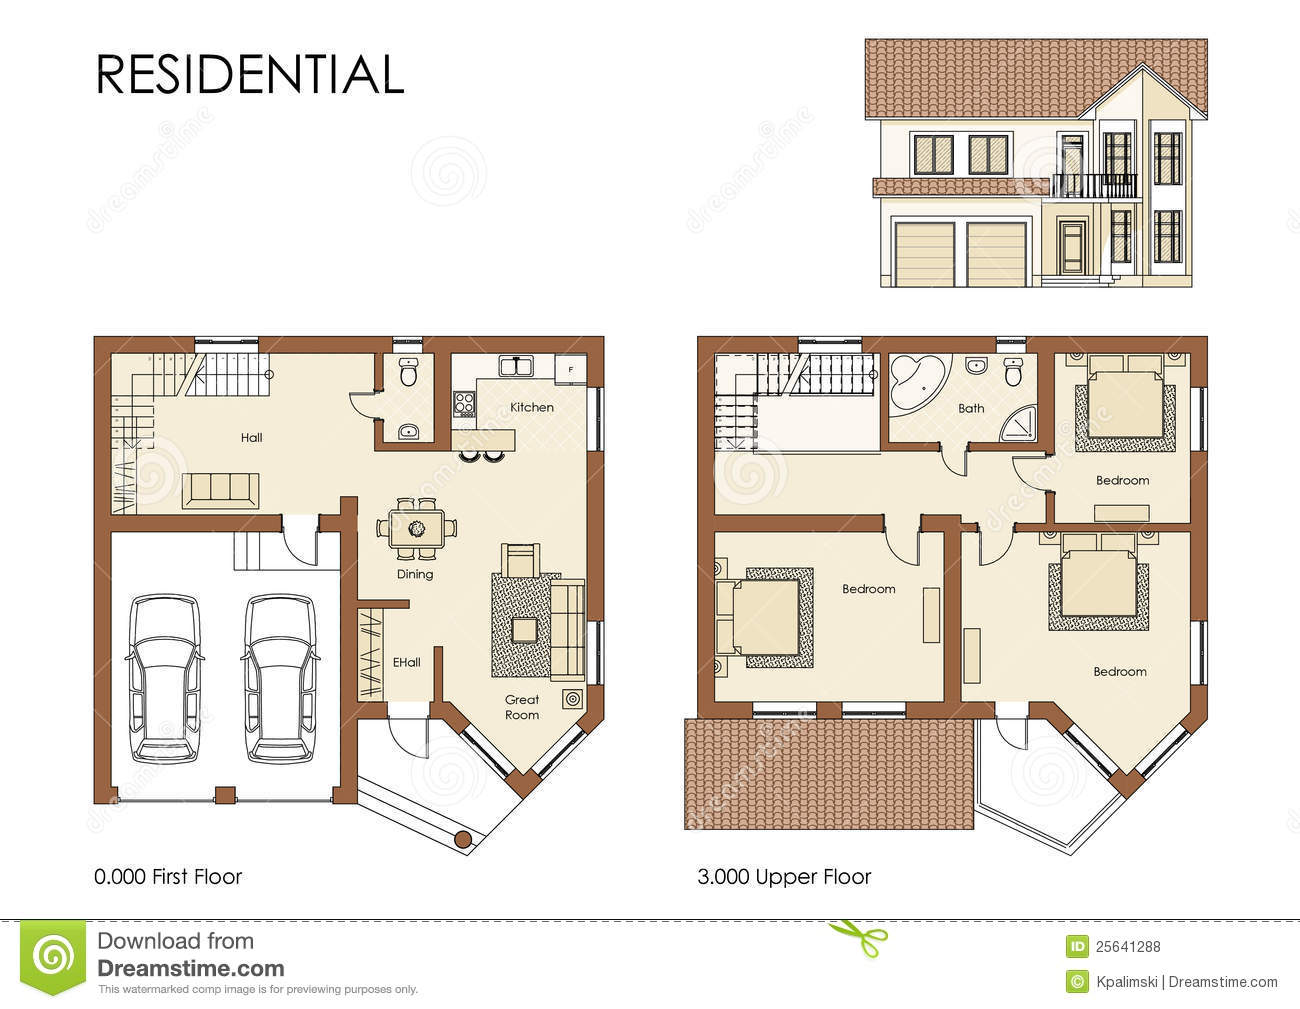 Residential house plan stock illustration illustration of for Residential building plans